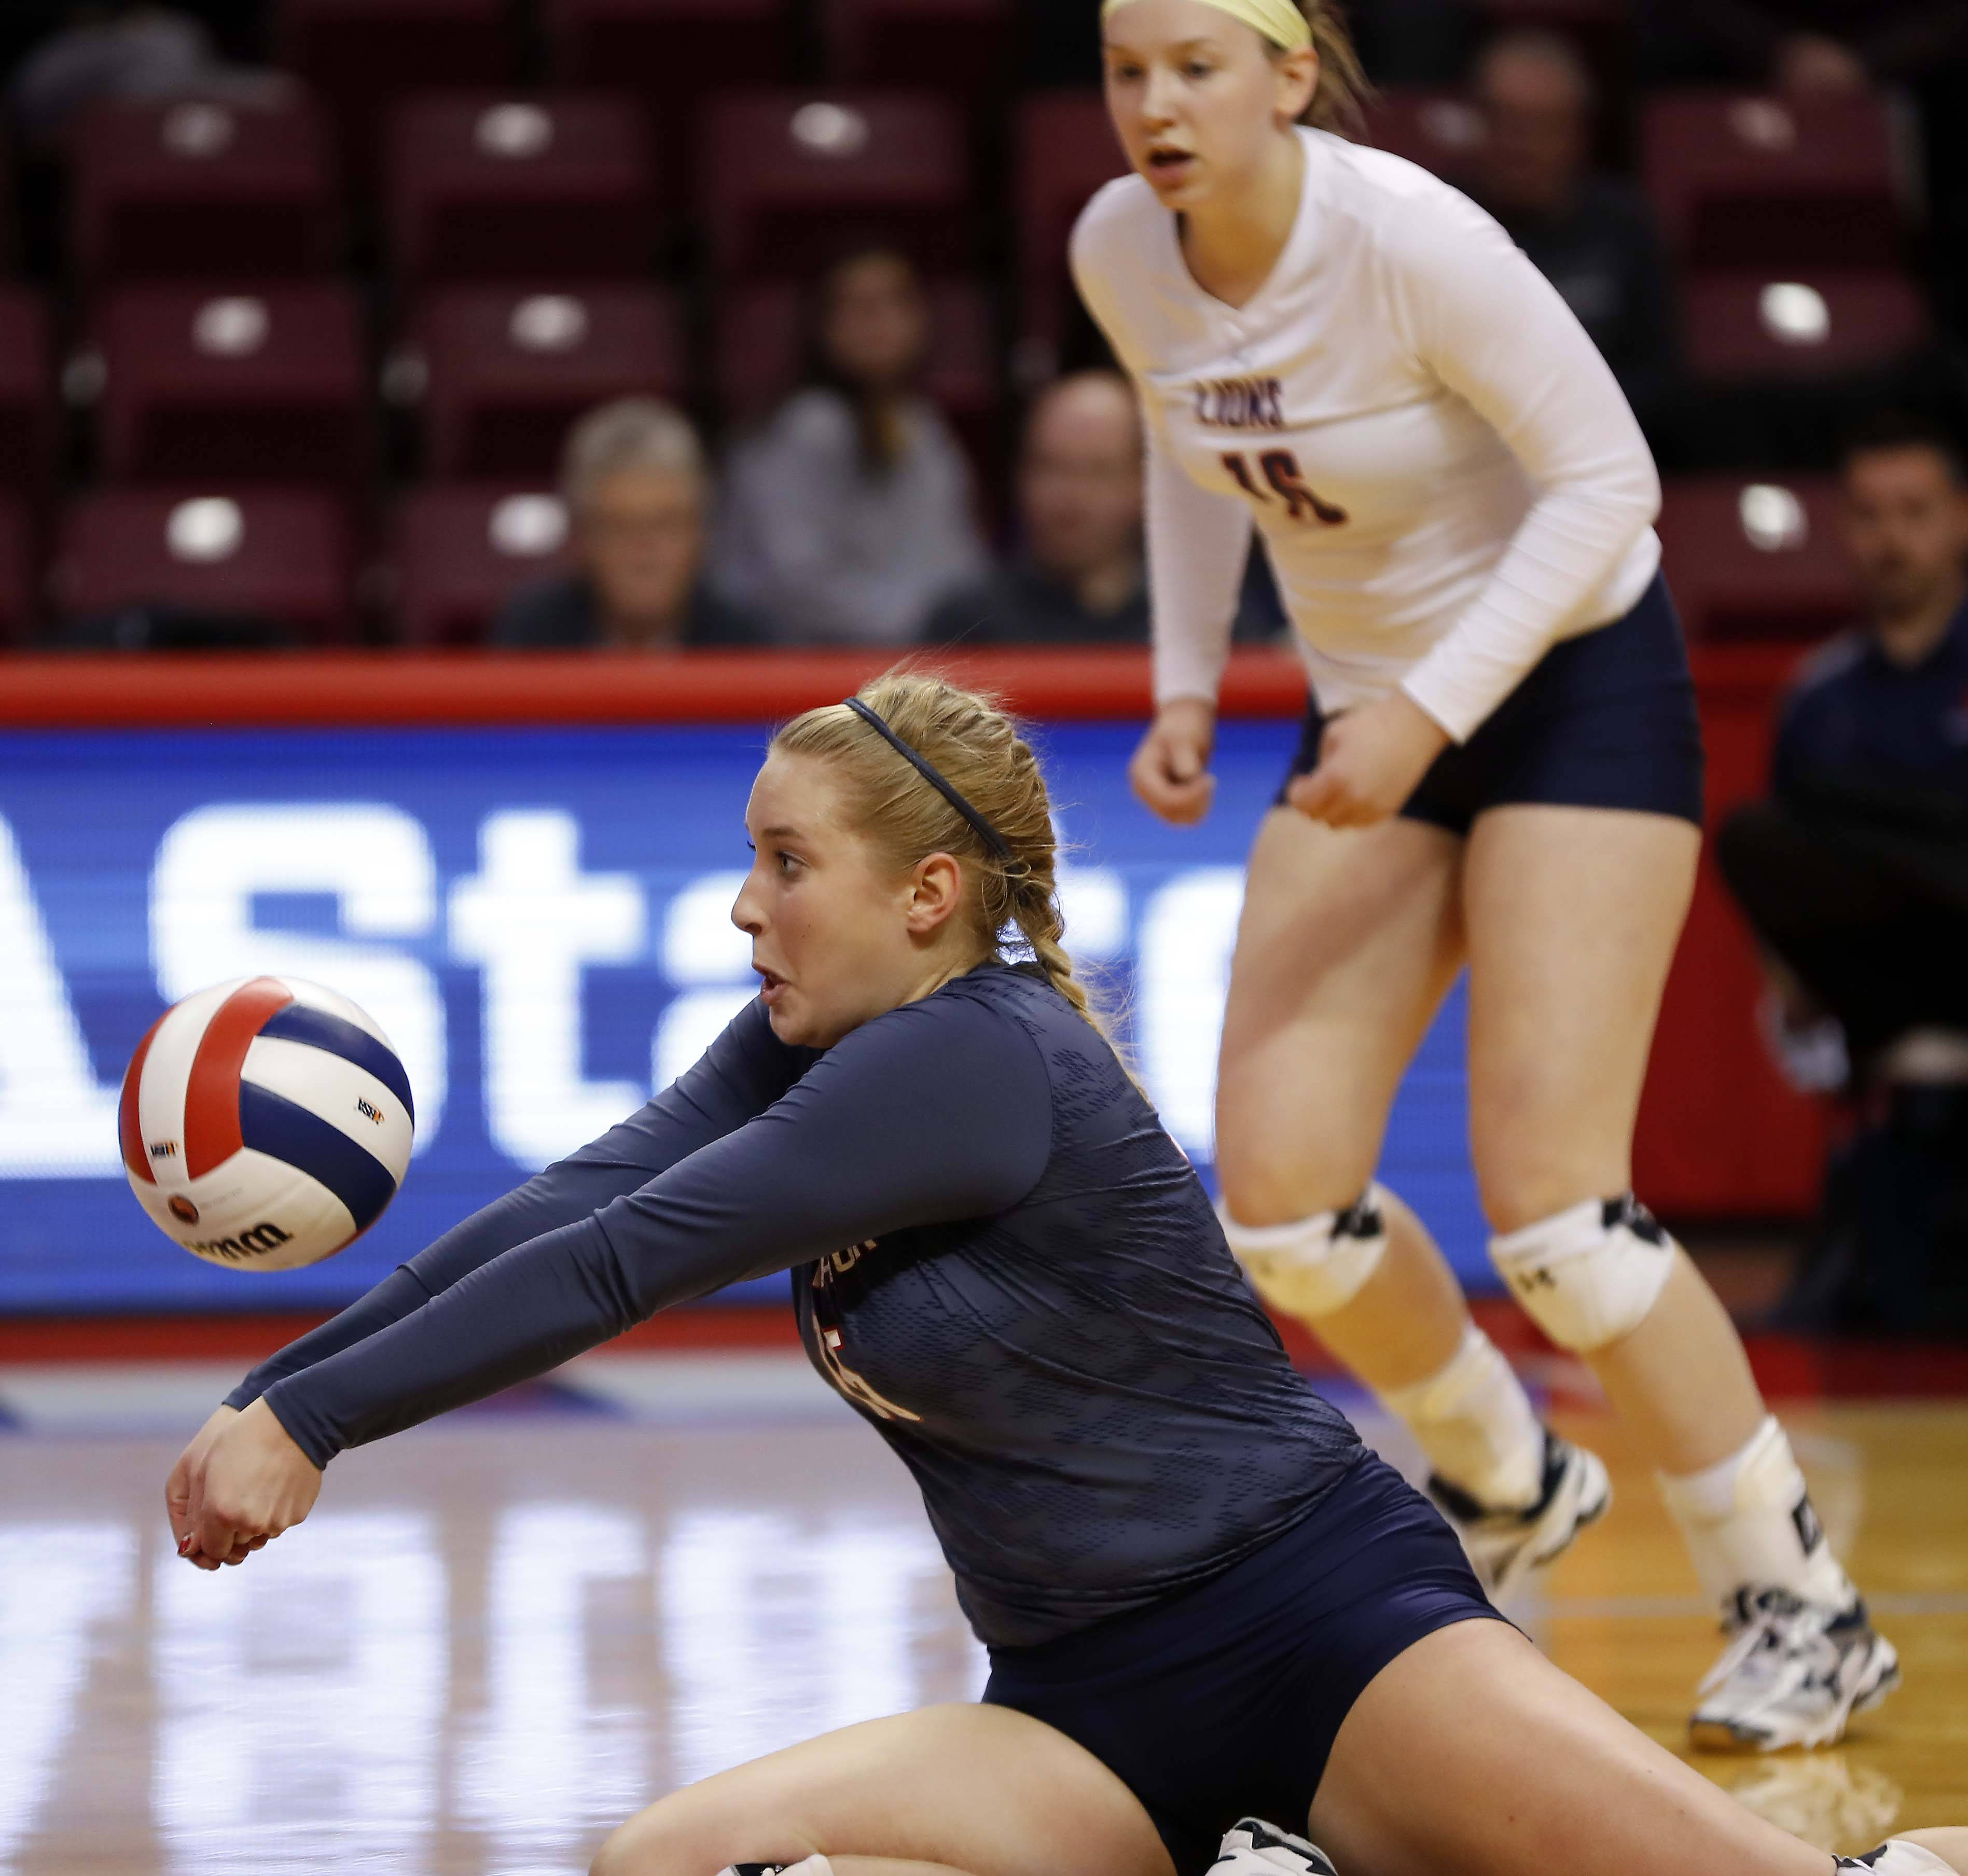 St. Viator's Carrie Leazer (15) with a dig in the semifinals of the IHSA Class 3A state girls volleyball tournament at Redbird Arena in Normal.